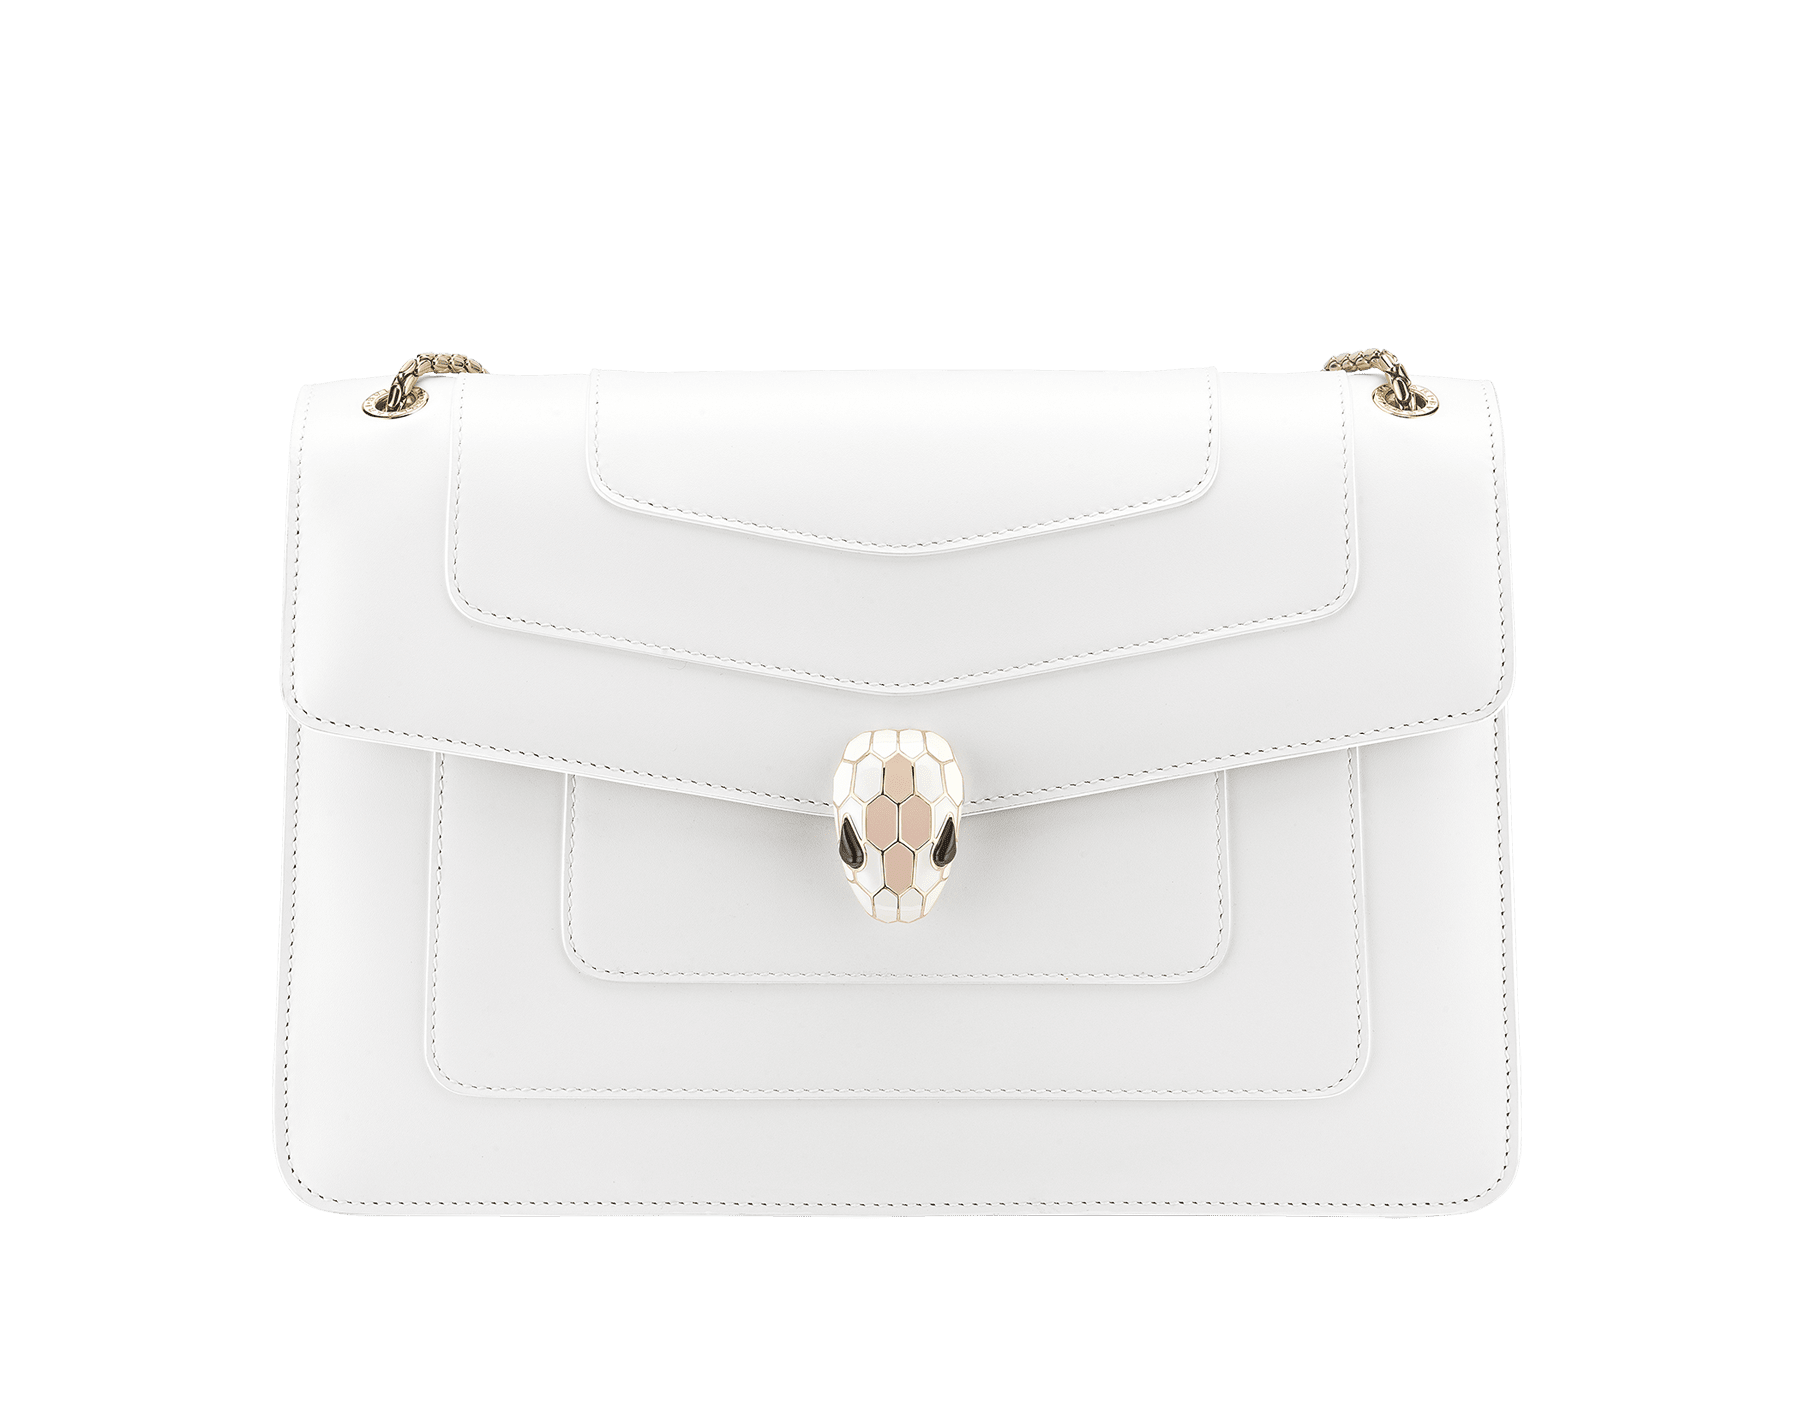 """Serpenti Forever"" shoulder bag in white calf leather body and crystal rose calf leather sides. Iconic snake head closure in light gold-plated brass enriched with white and crystal rose enamel and black onyx eyes. 290196 image 1"